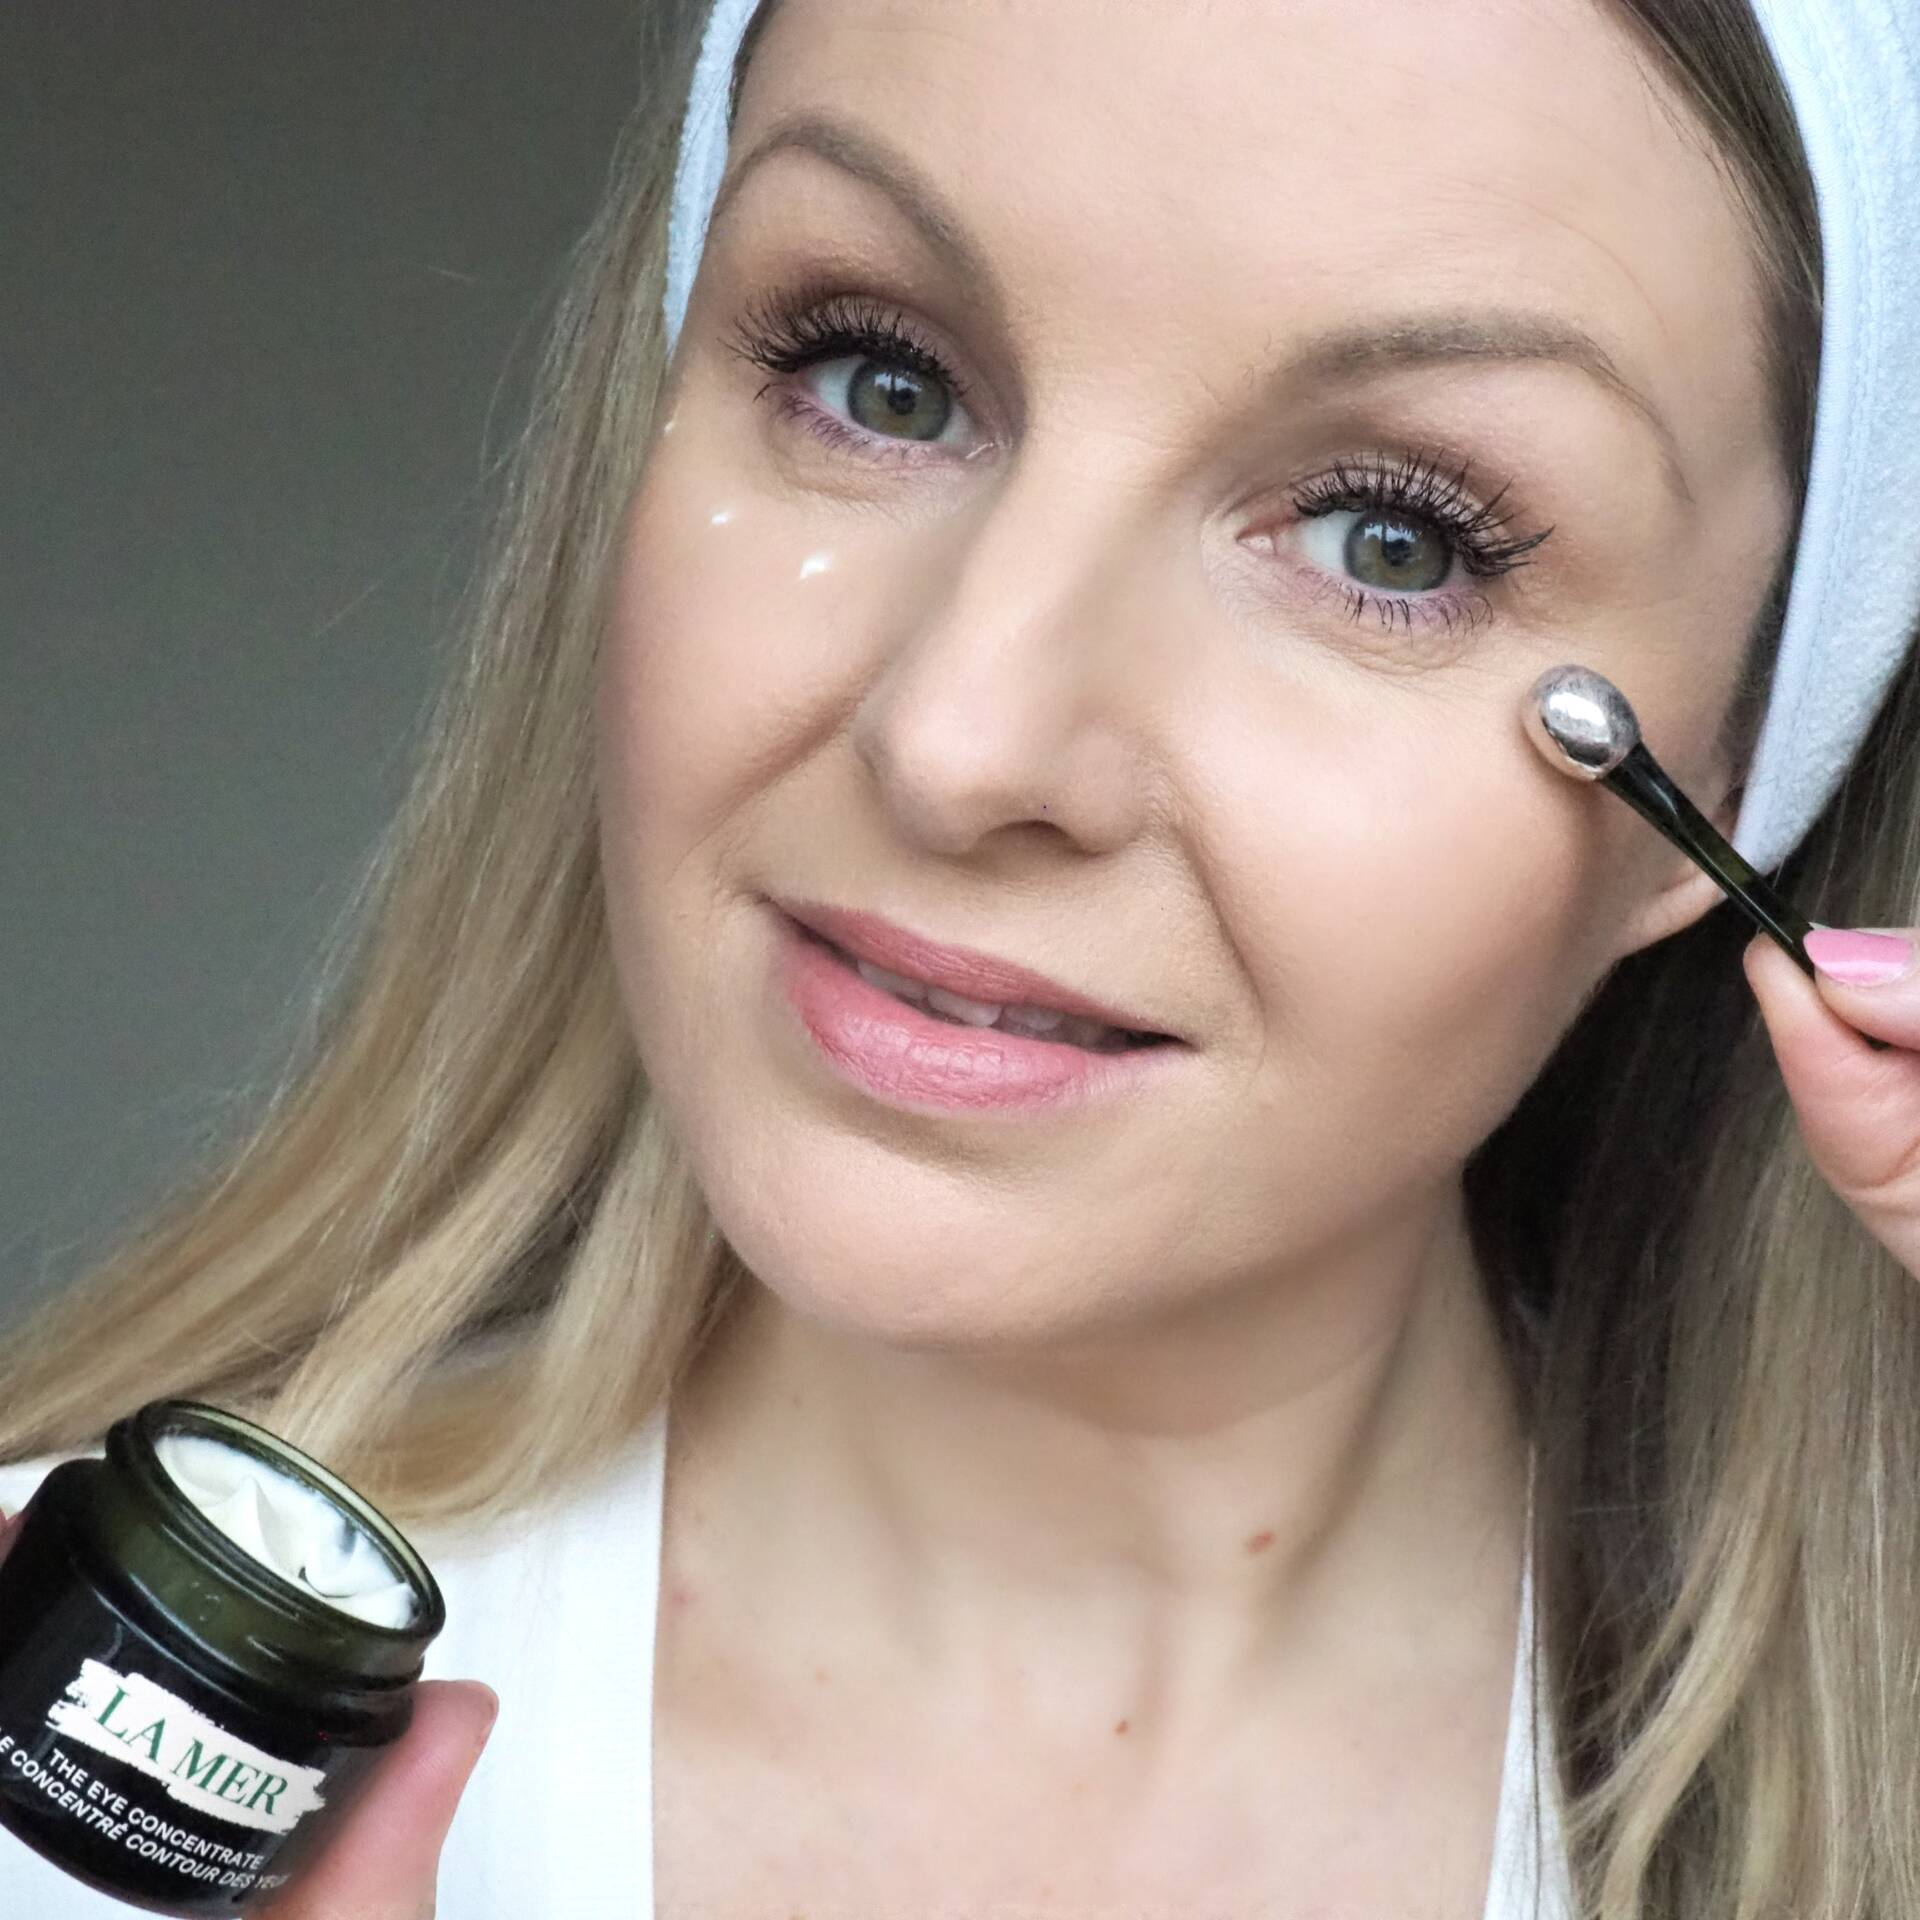 la-mer-eye-cream-skincare-the-concentrate-review